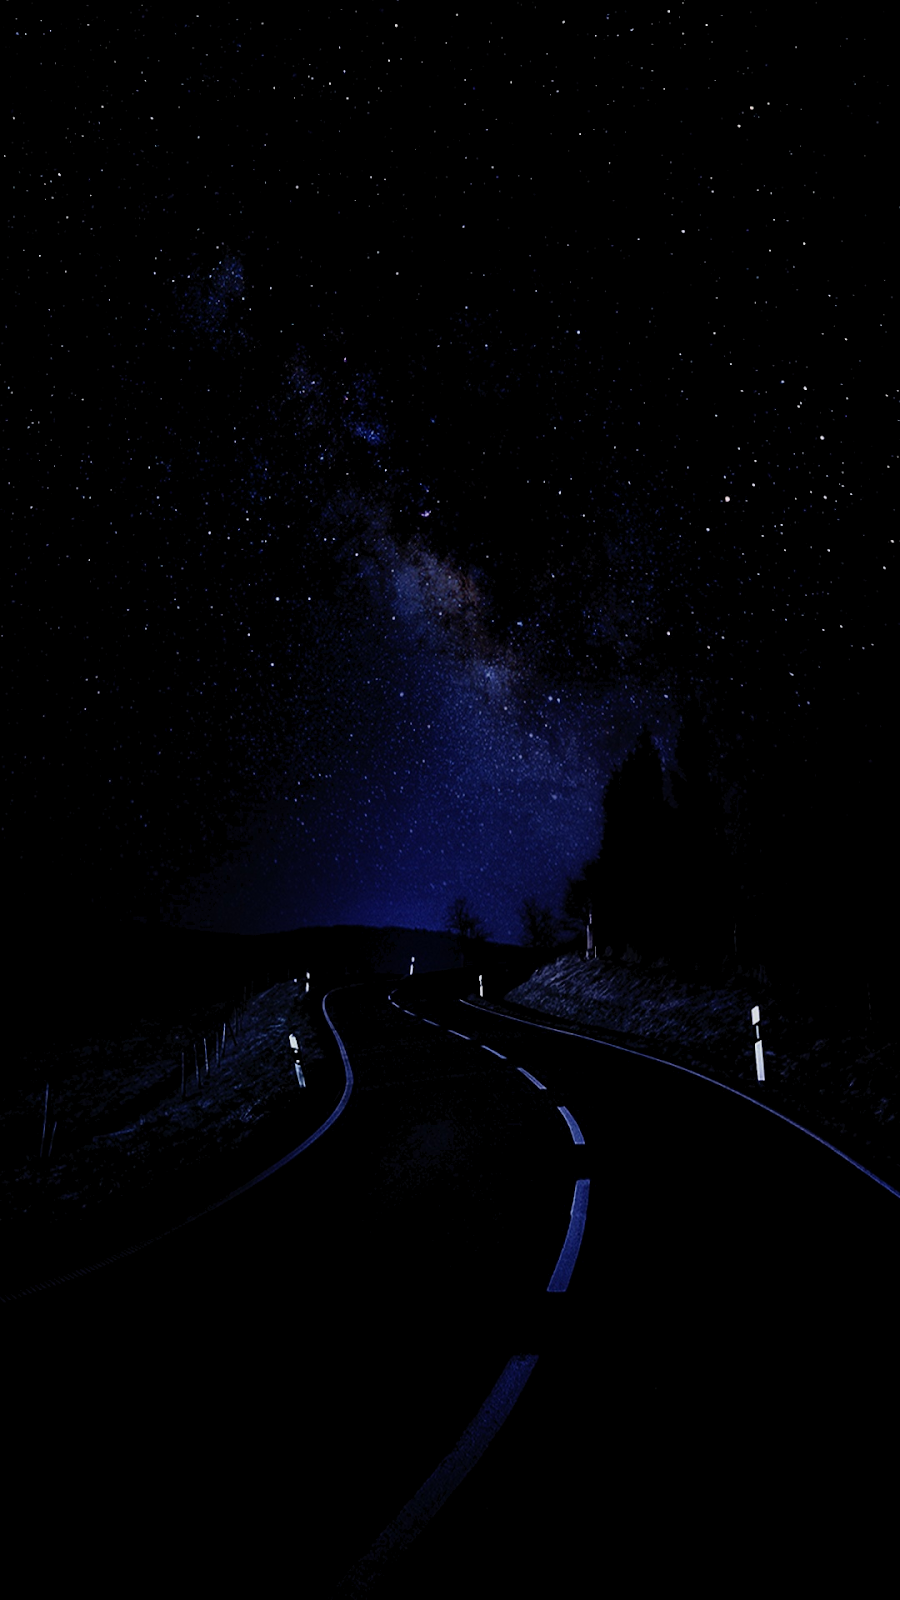 Night Street  (Saving battery for Amoled display)